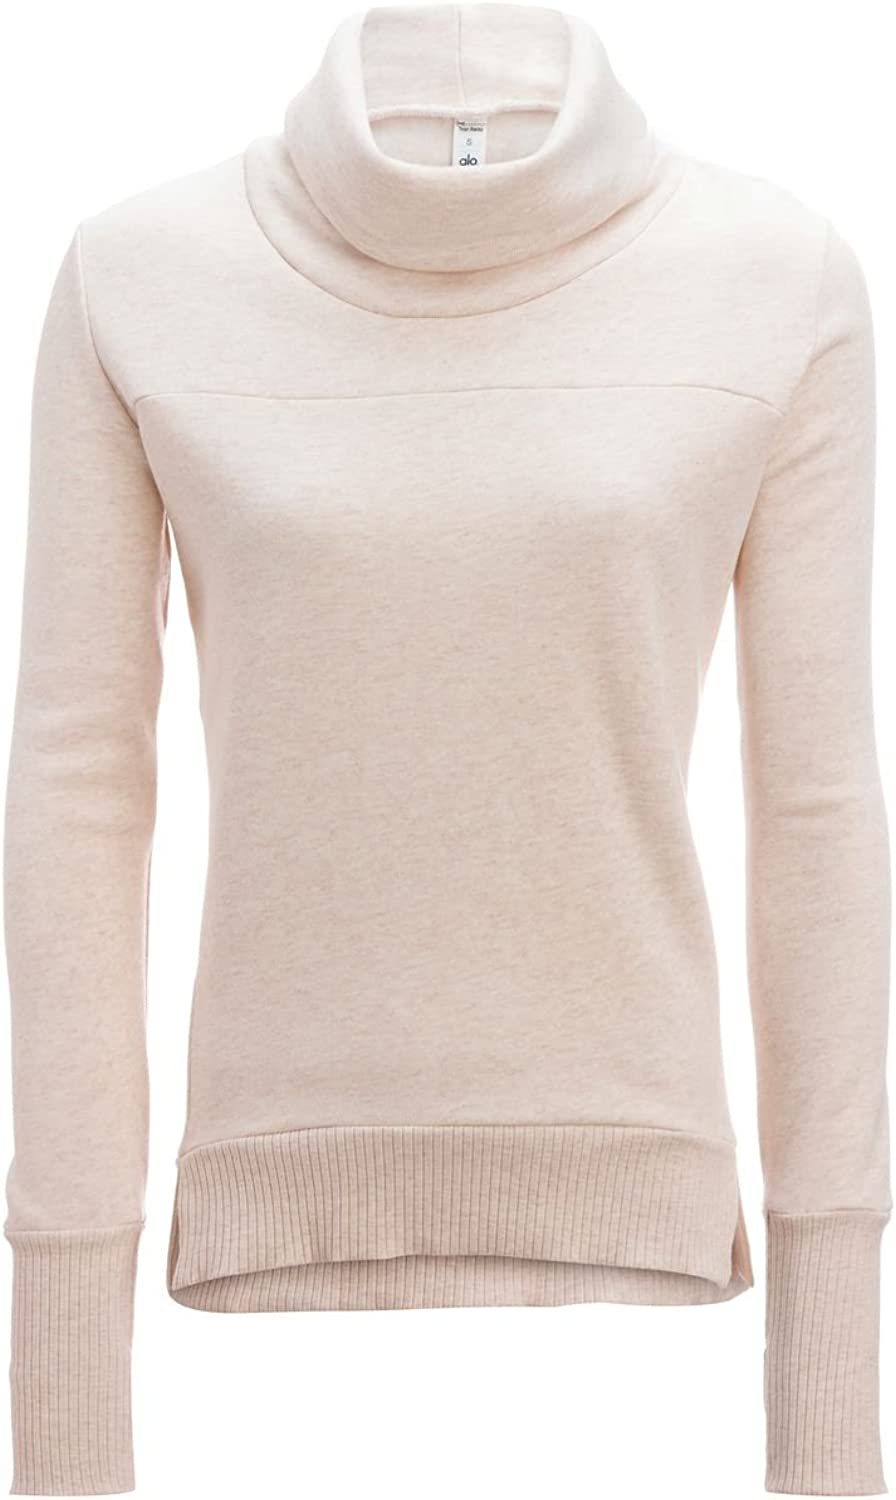 ALO Womens Haze Long Sleeve Top